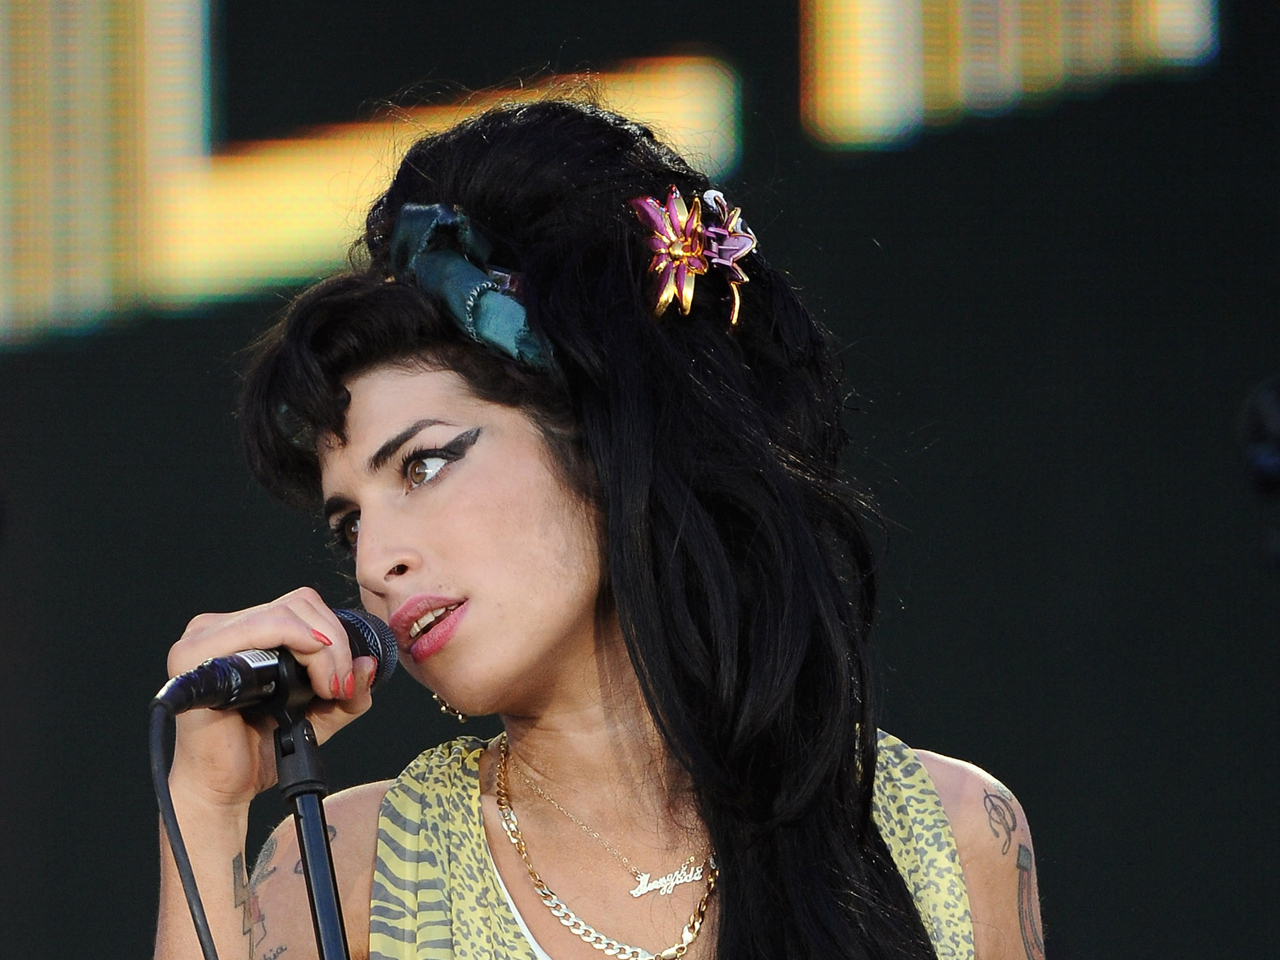 Amy Winehouse and Tony Bennett duet to be released - CBS News